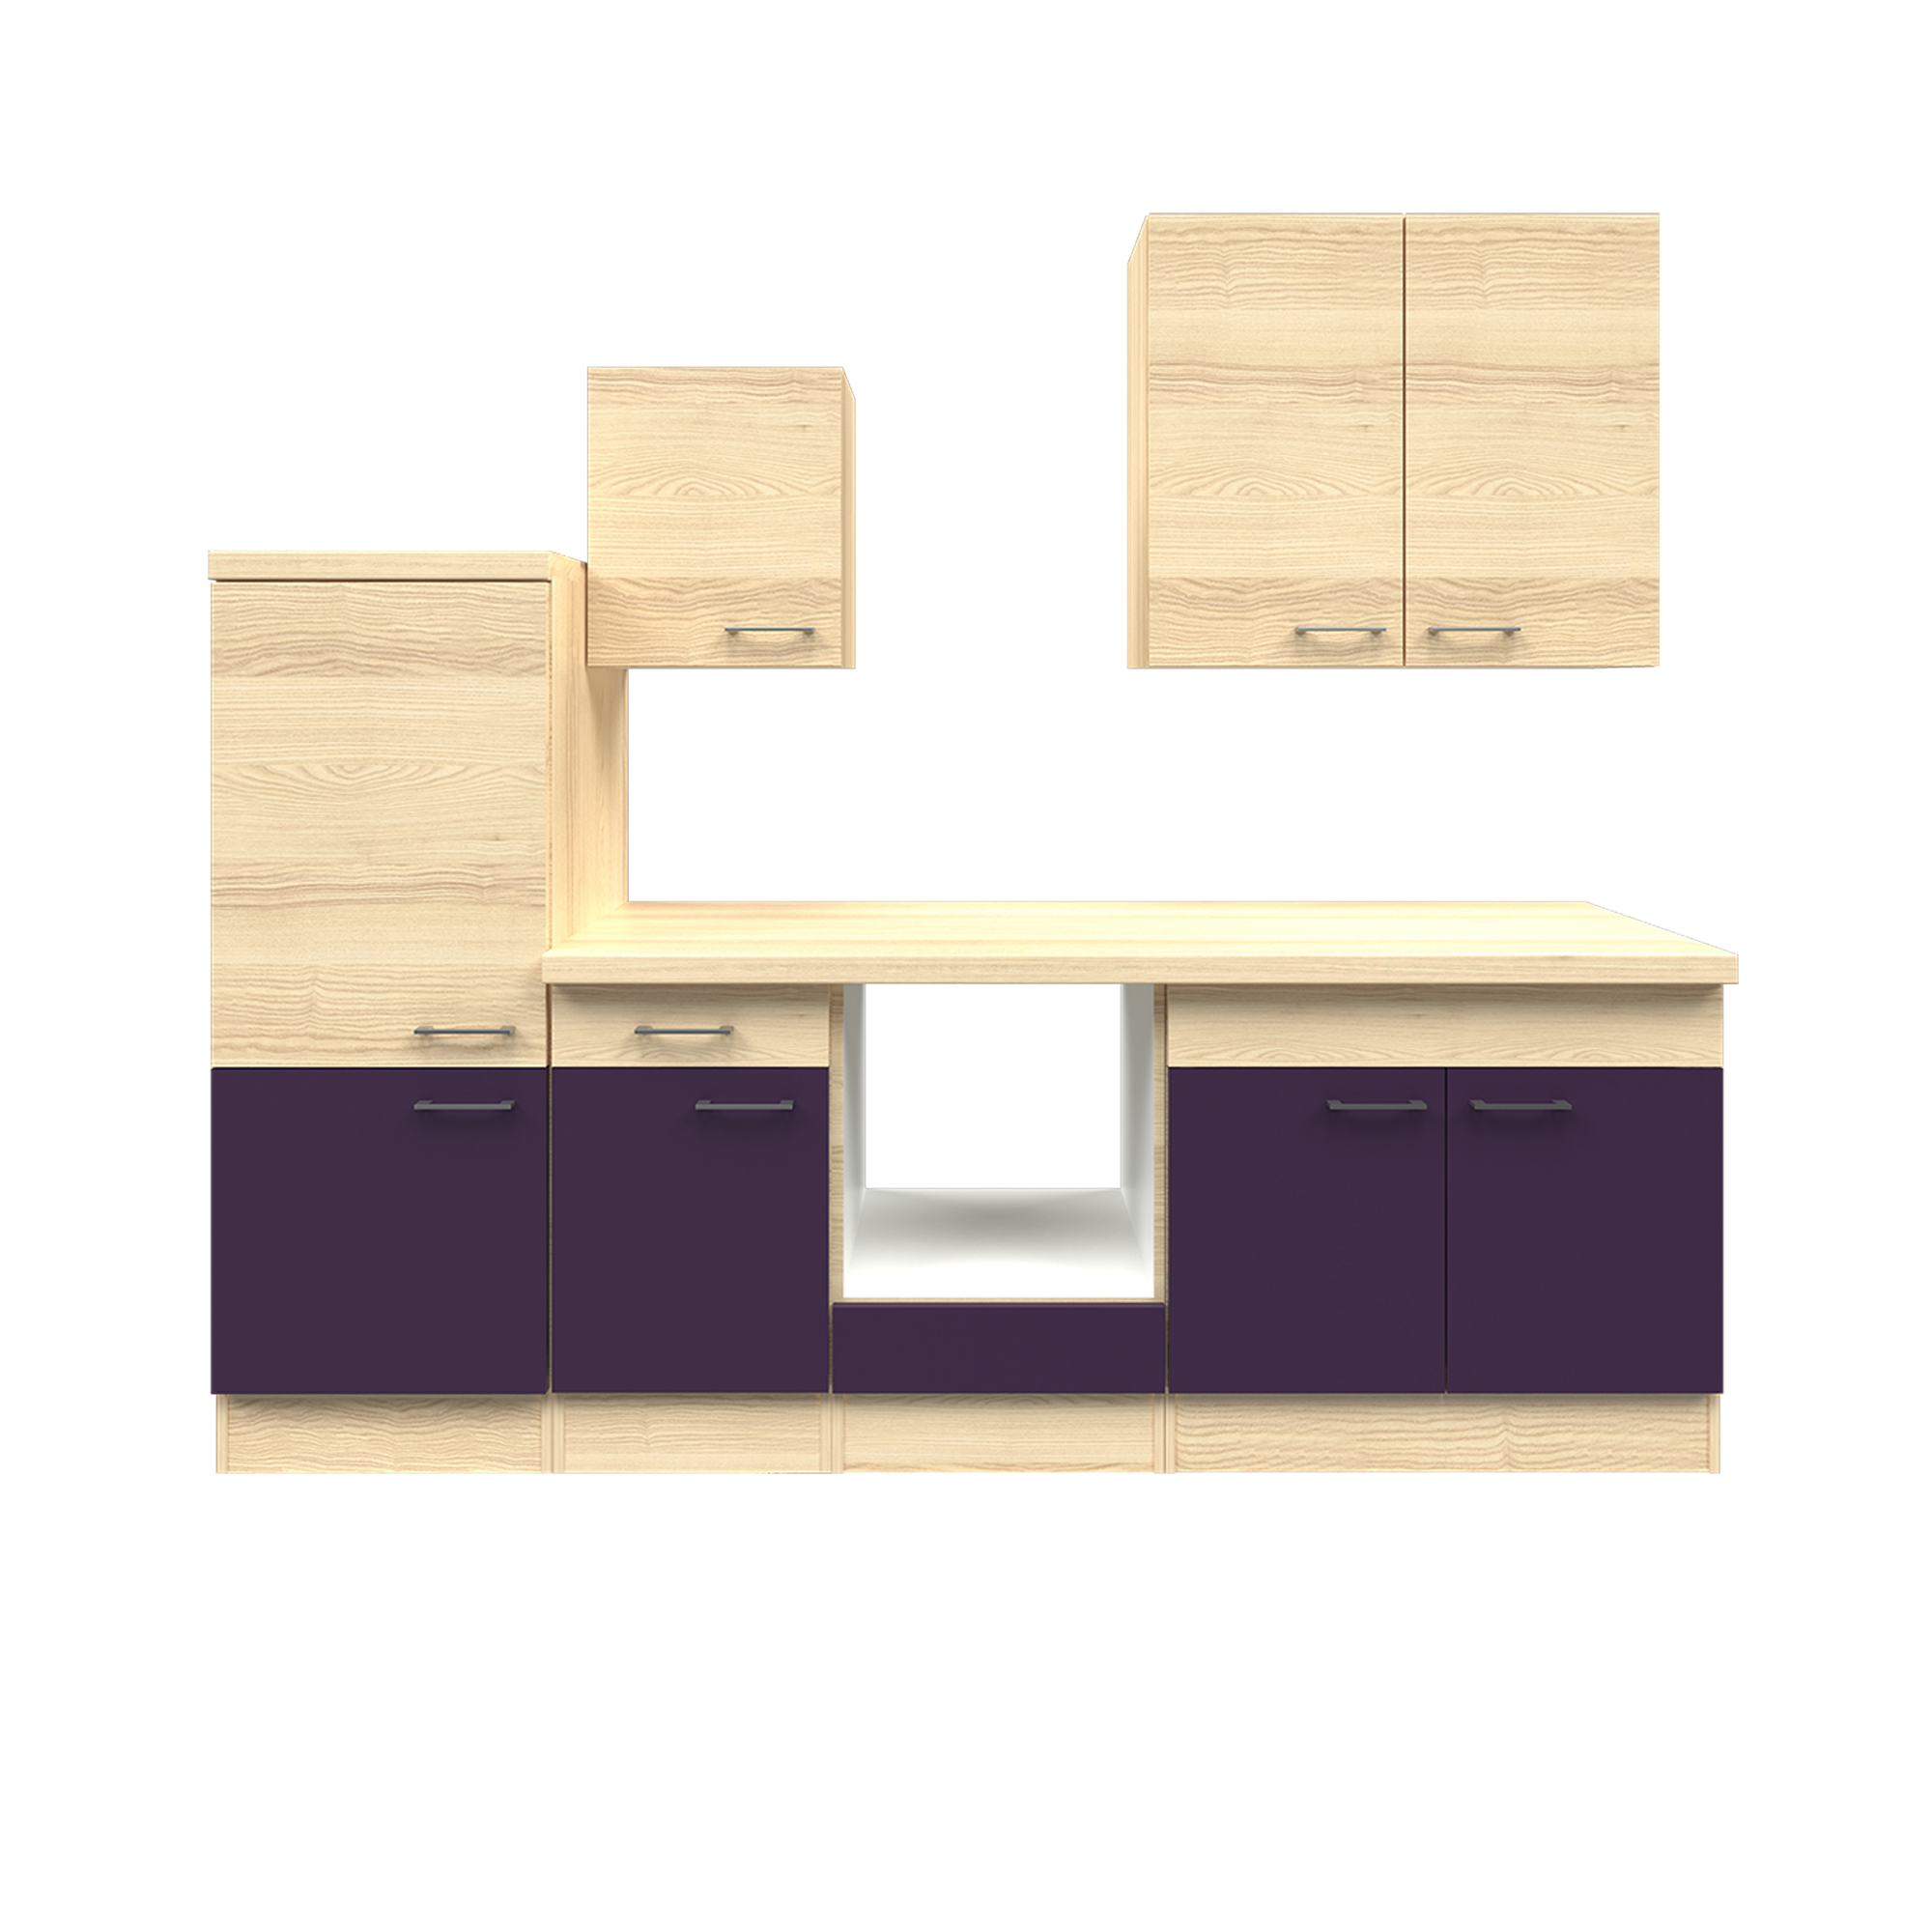 k chenzeile focus leerblock mit midi umbauschrank breite 270 cm aubergine k che k chenzeilen. Black Bedroom Furniture Sets. Home Design Ideas